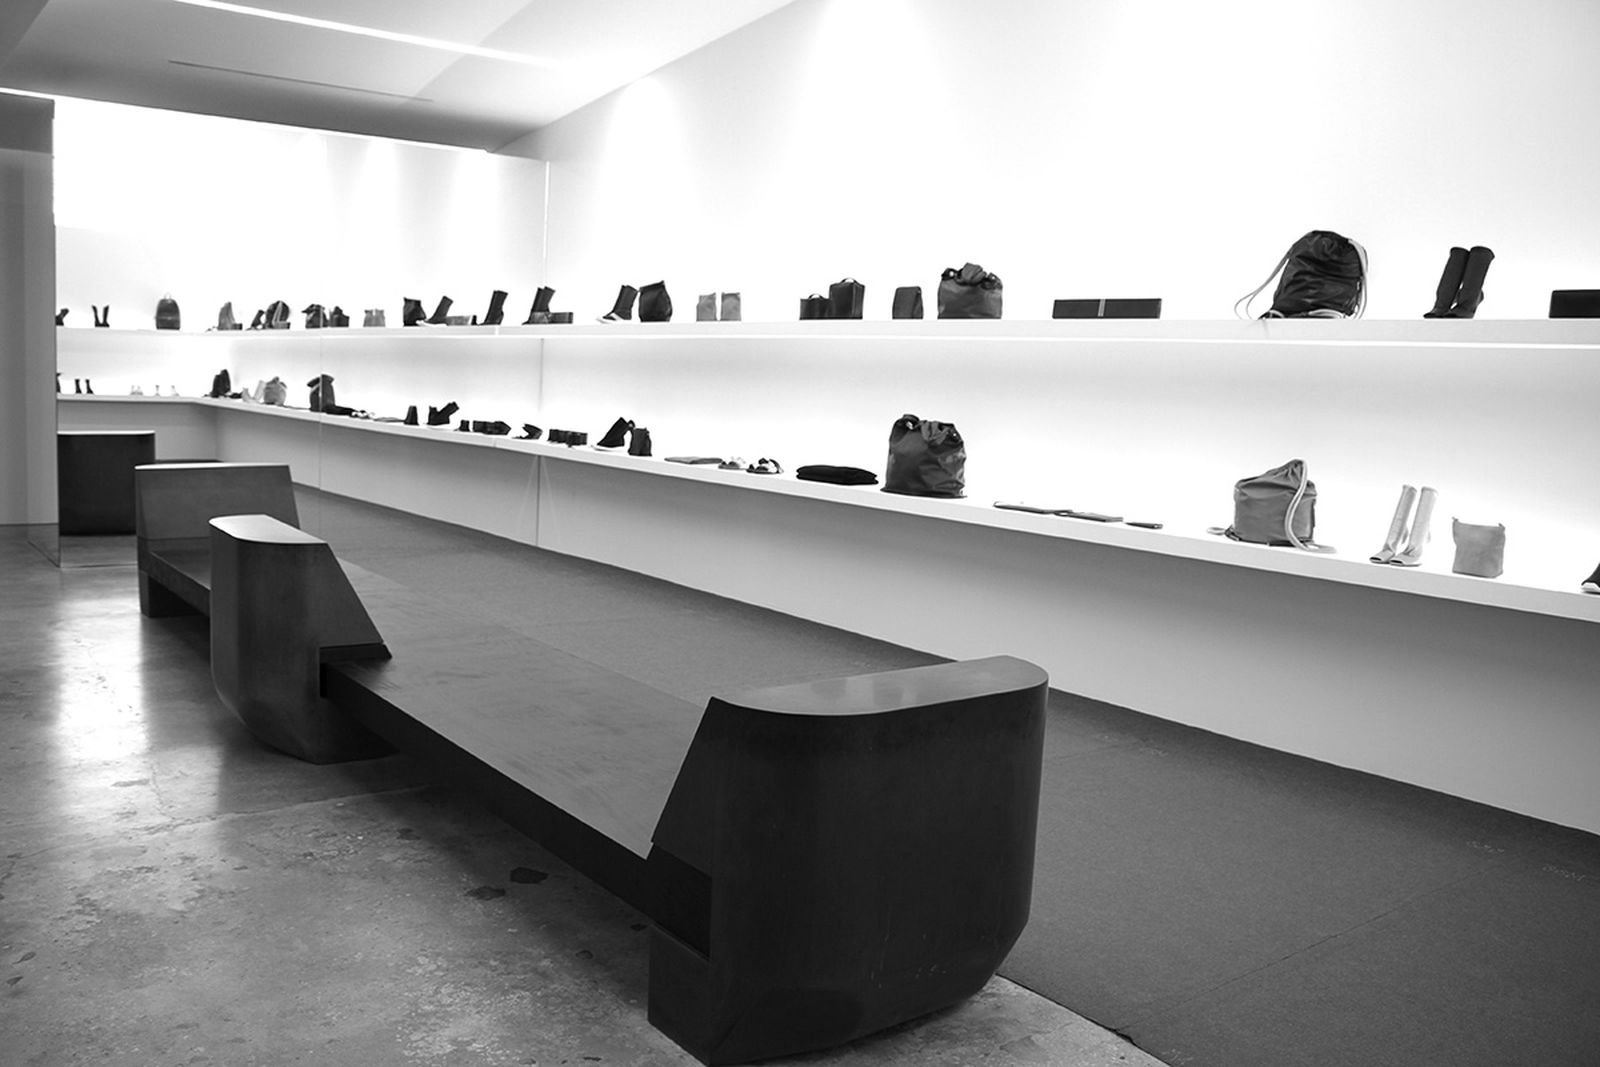 game-changers-best-store-interiors-changed-fashion-rick-owens-03